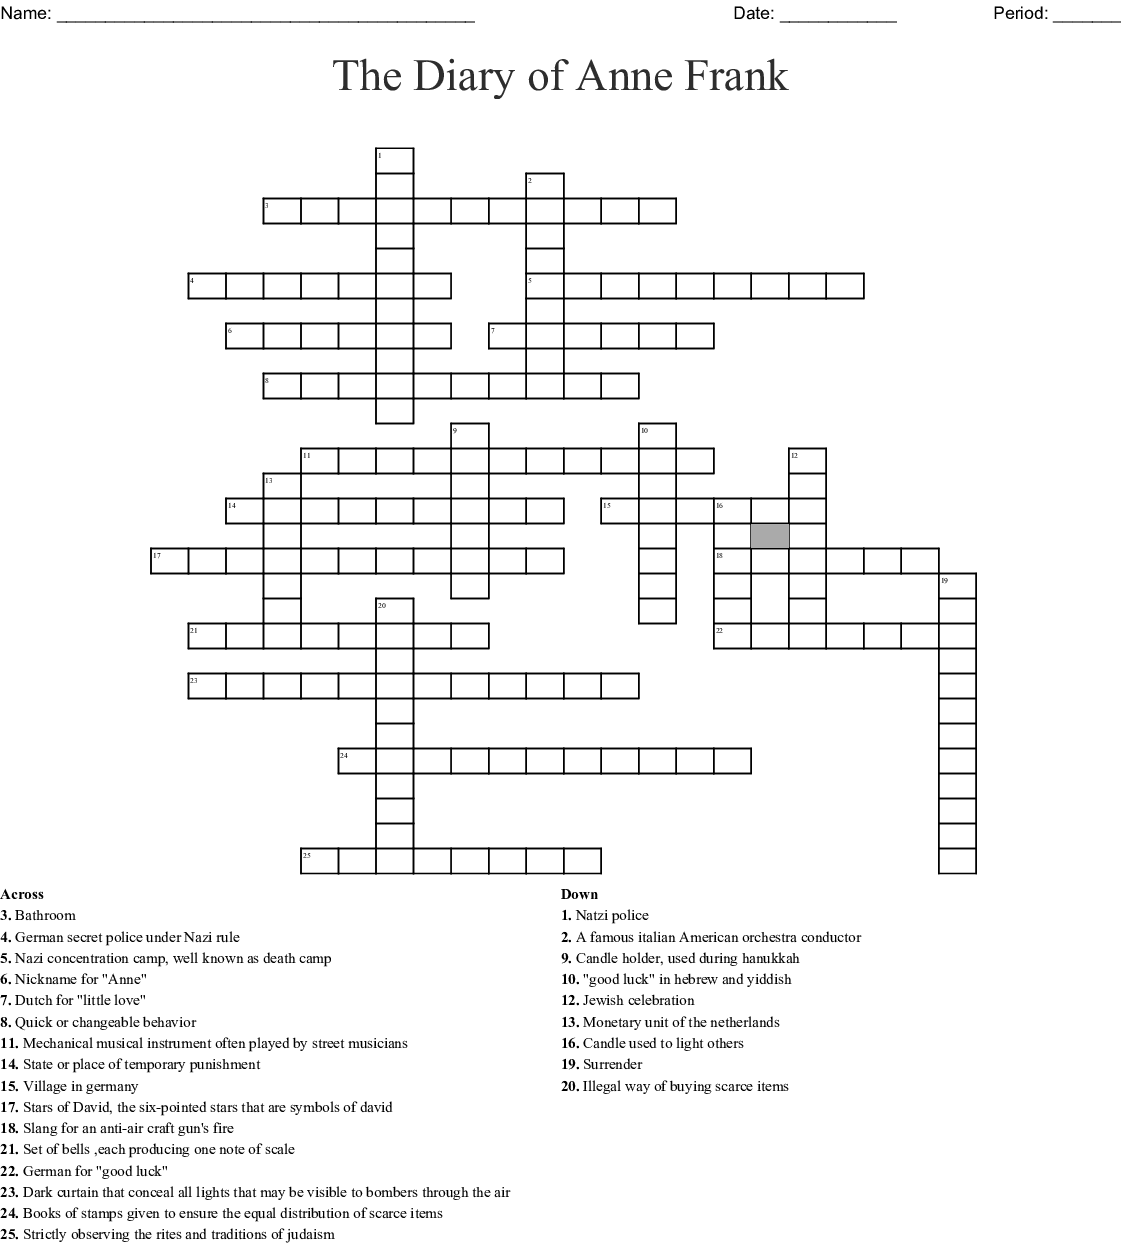 The Diary of Anne Frank Vocabulary Crossword - WordMint